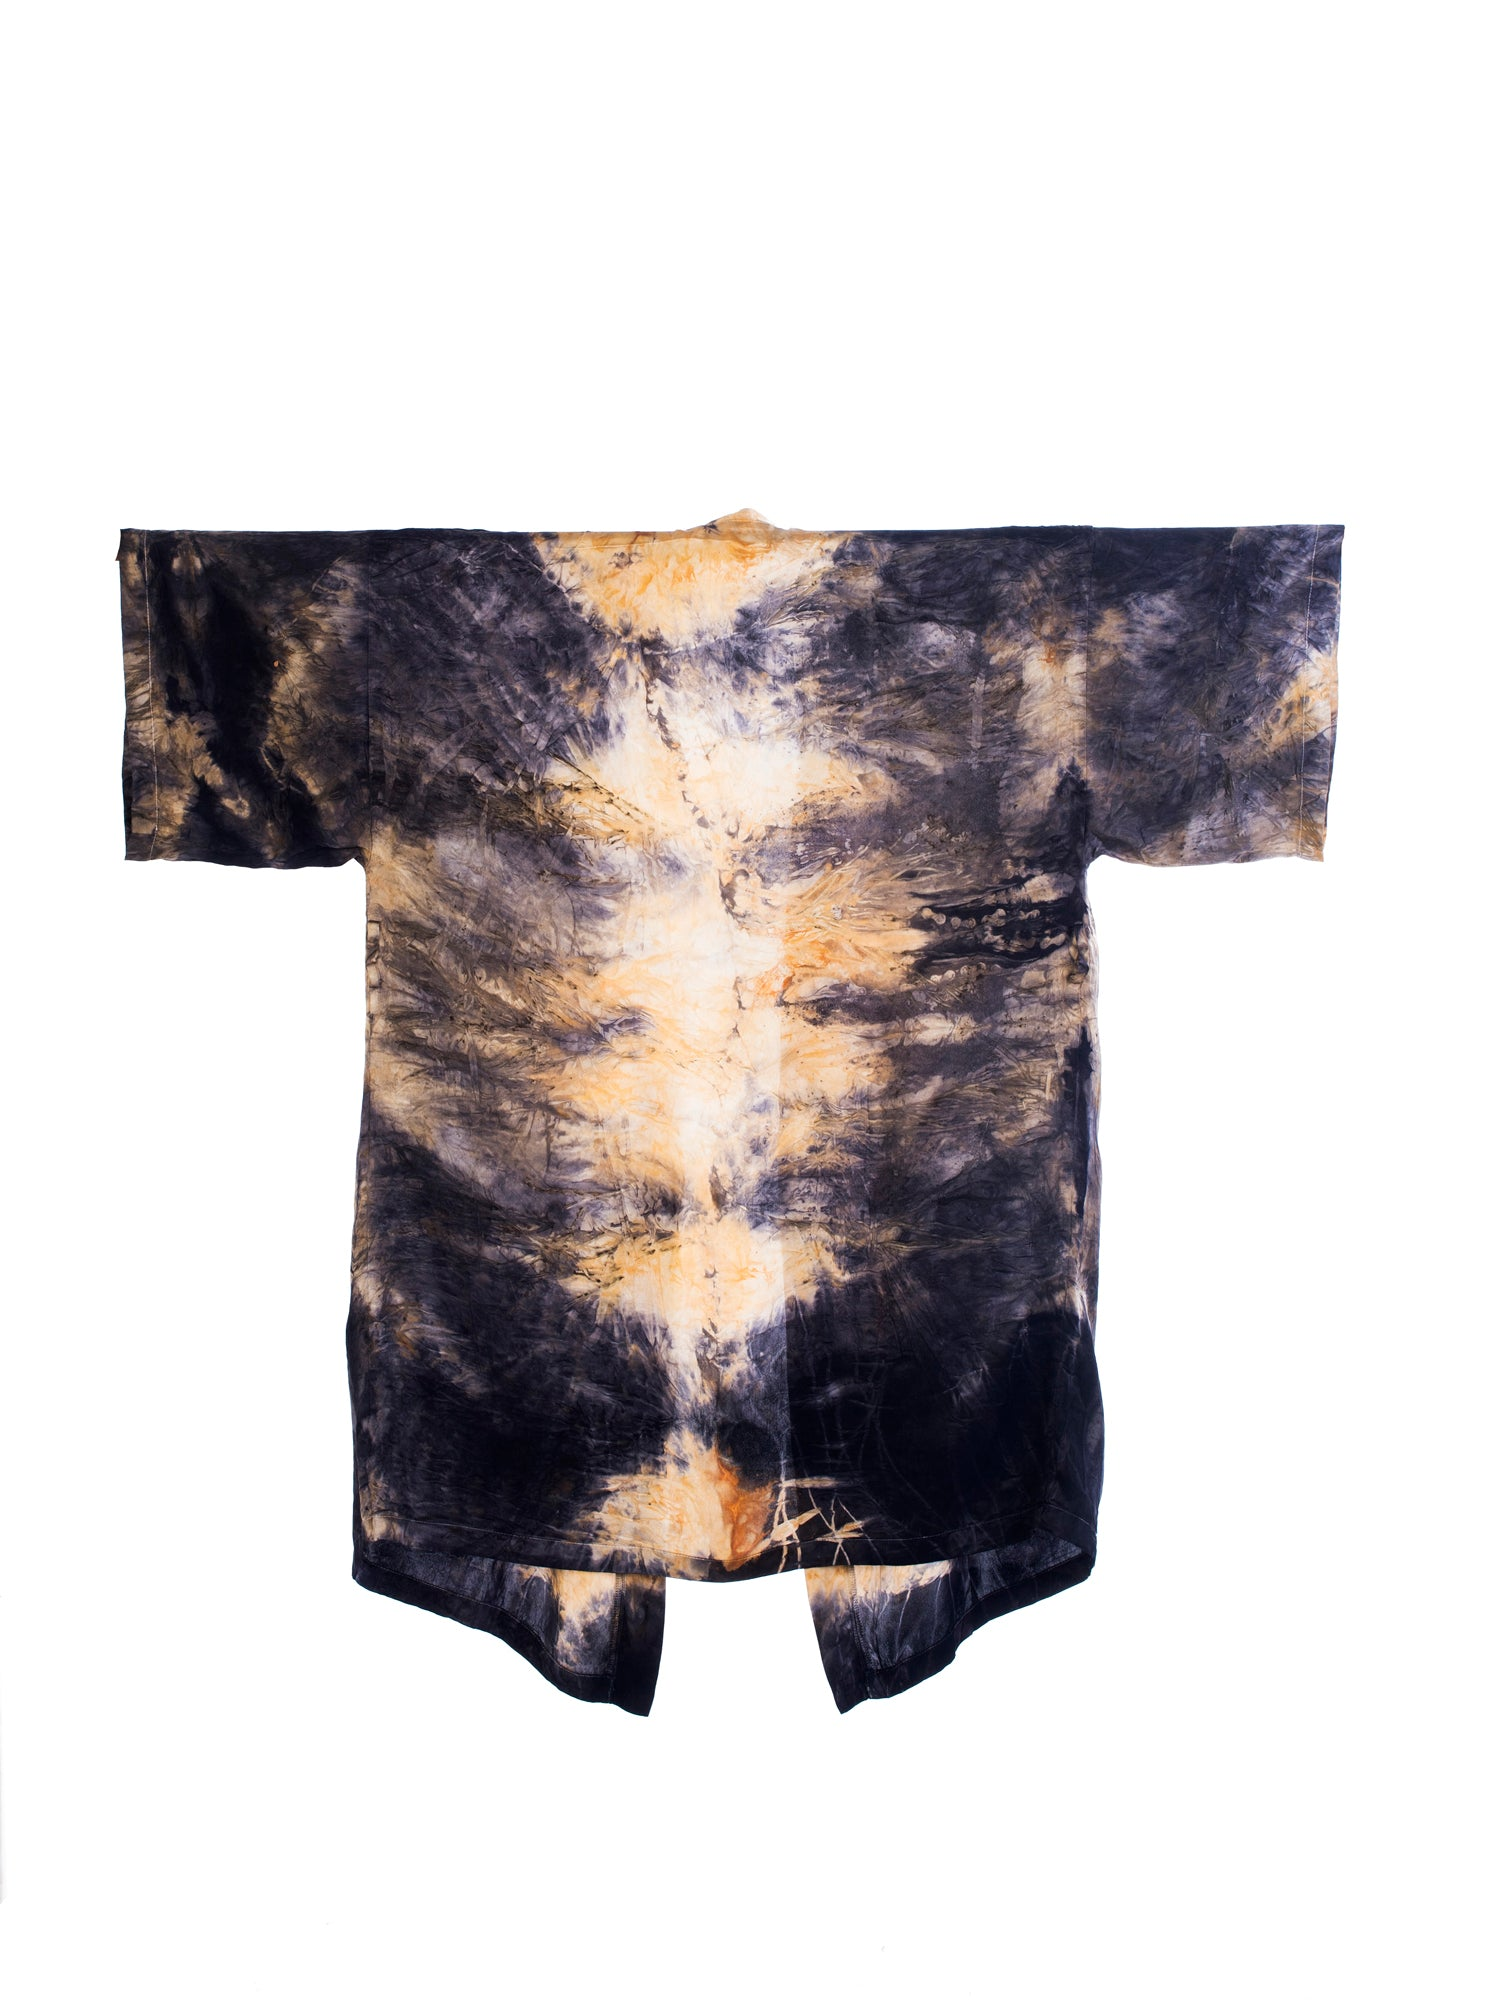 Bush Dyed Silk Robe by Verity Dhamarrandji